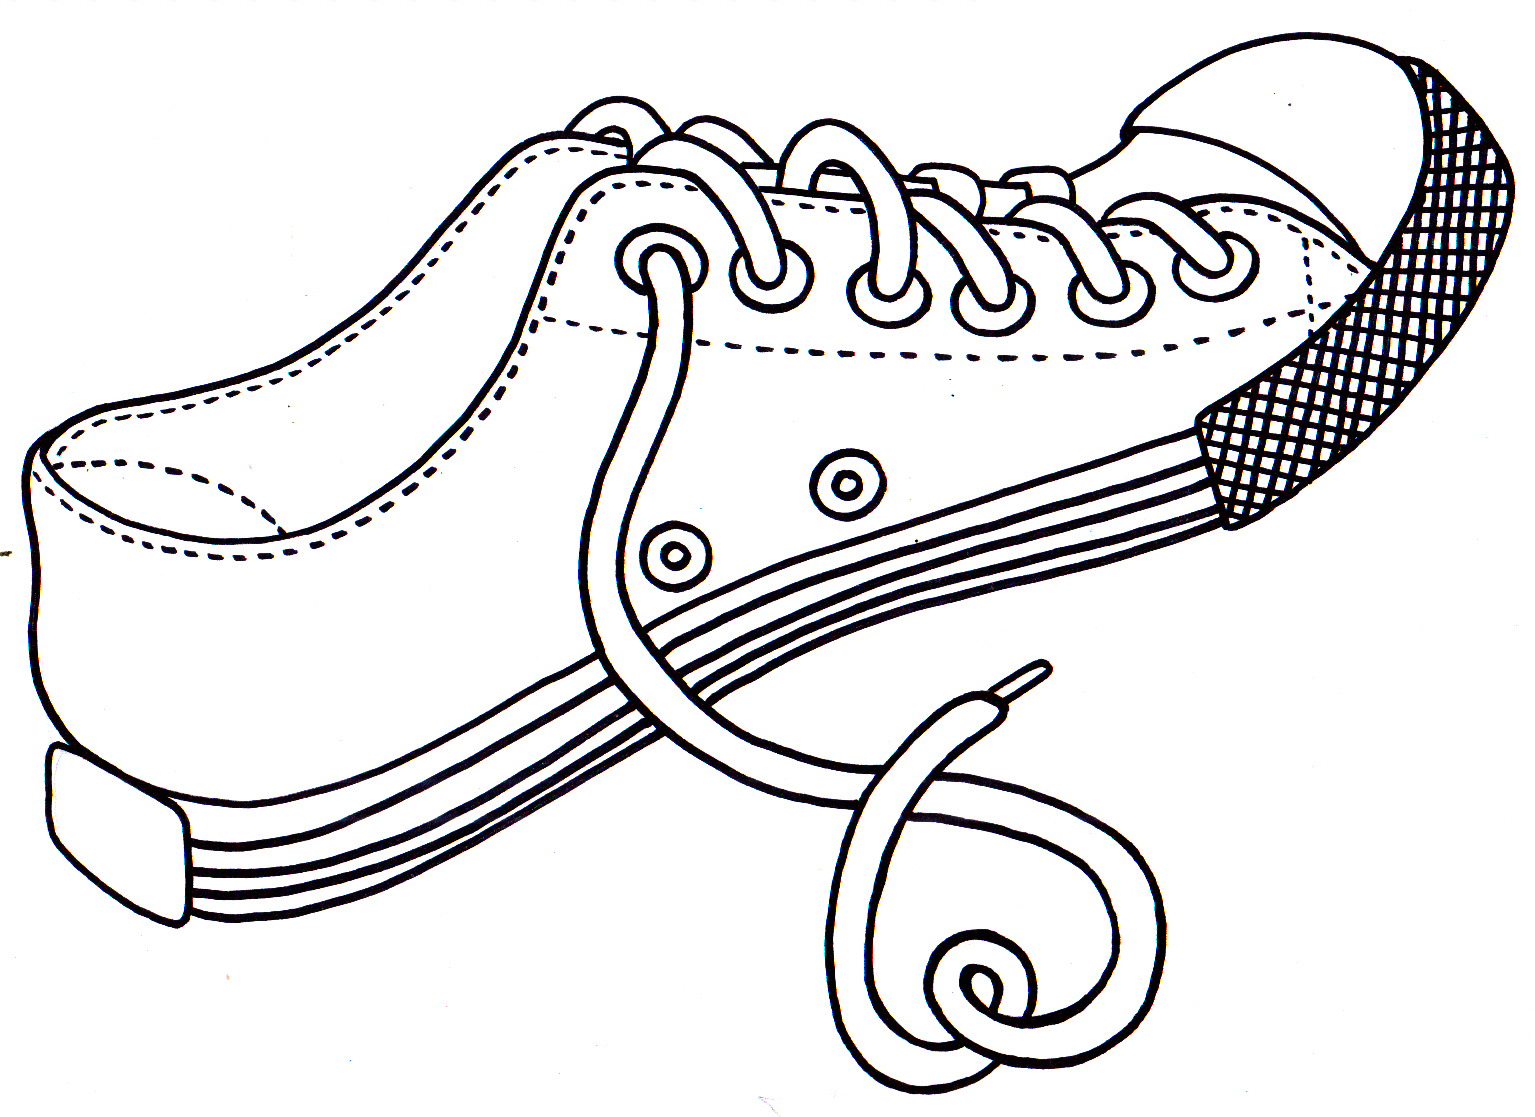 Shoes Coloring Pages Printable | Coloring Page